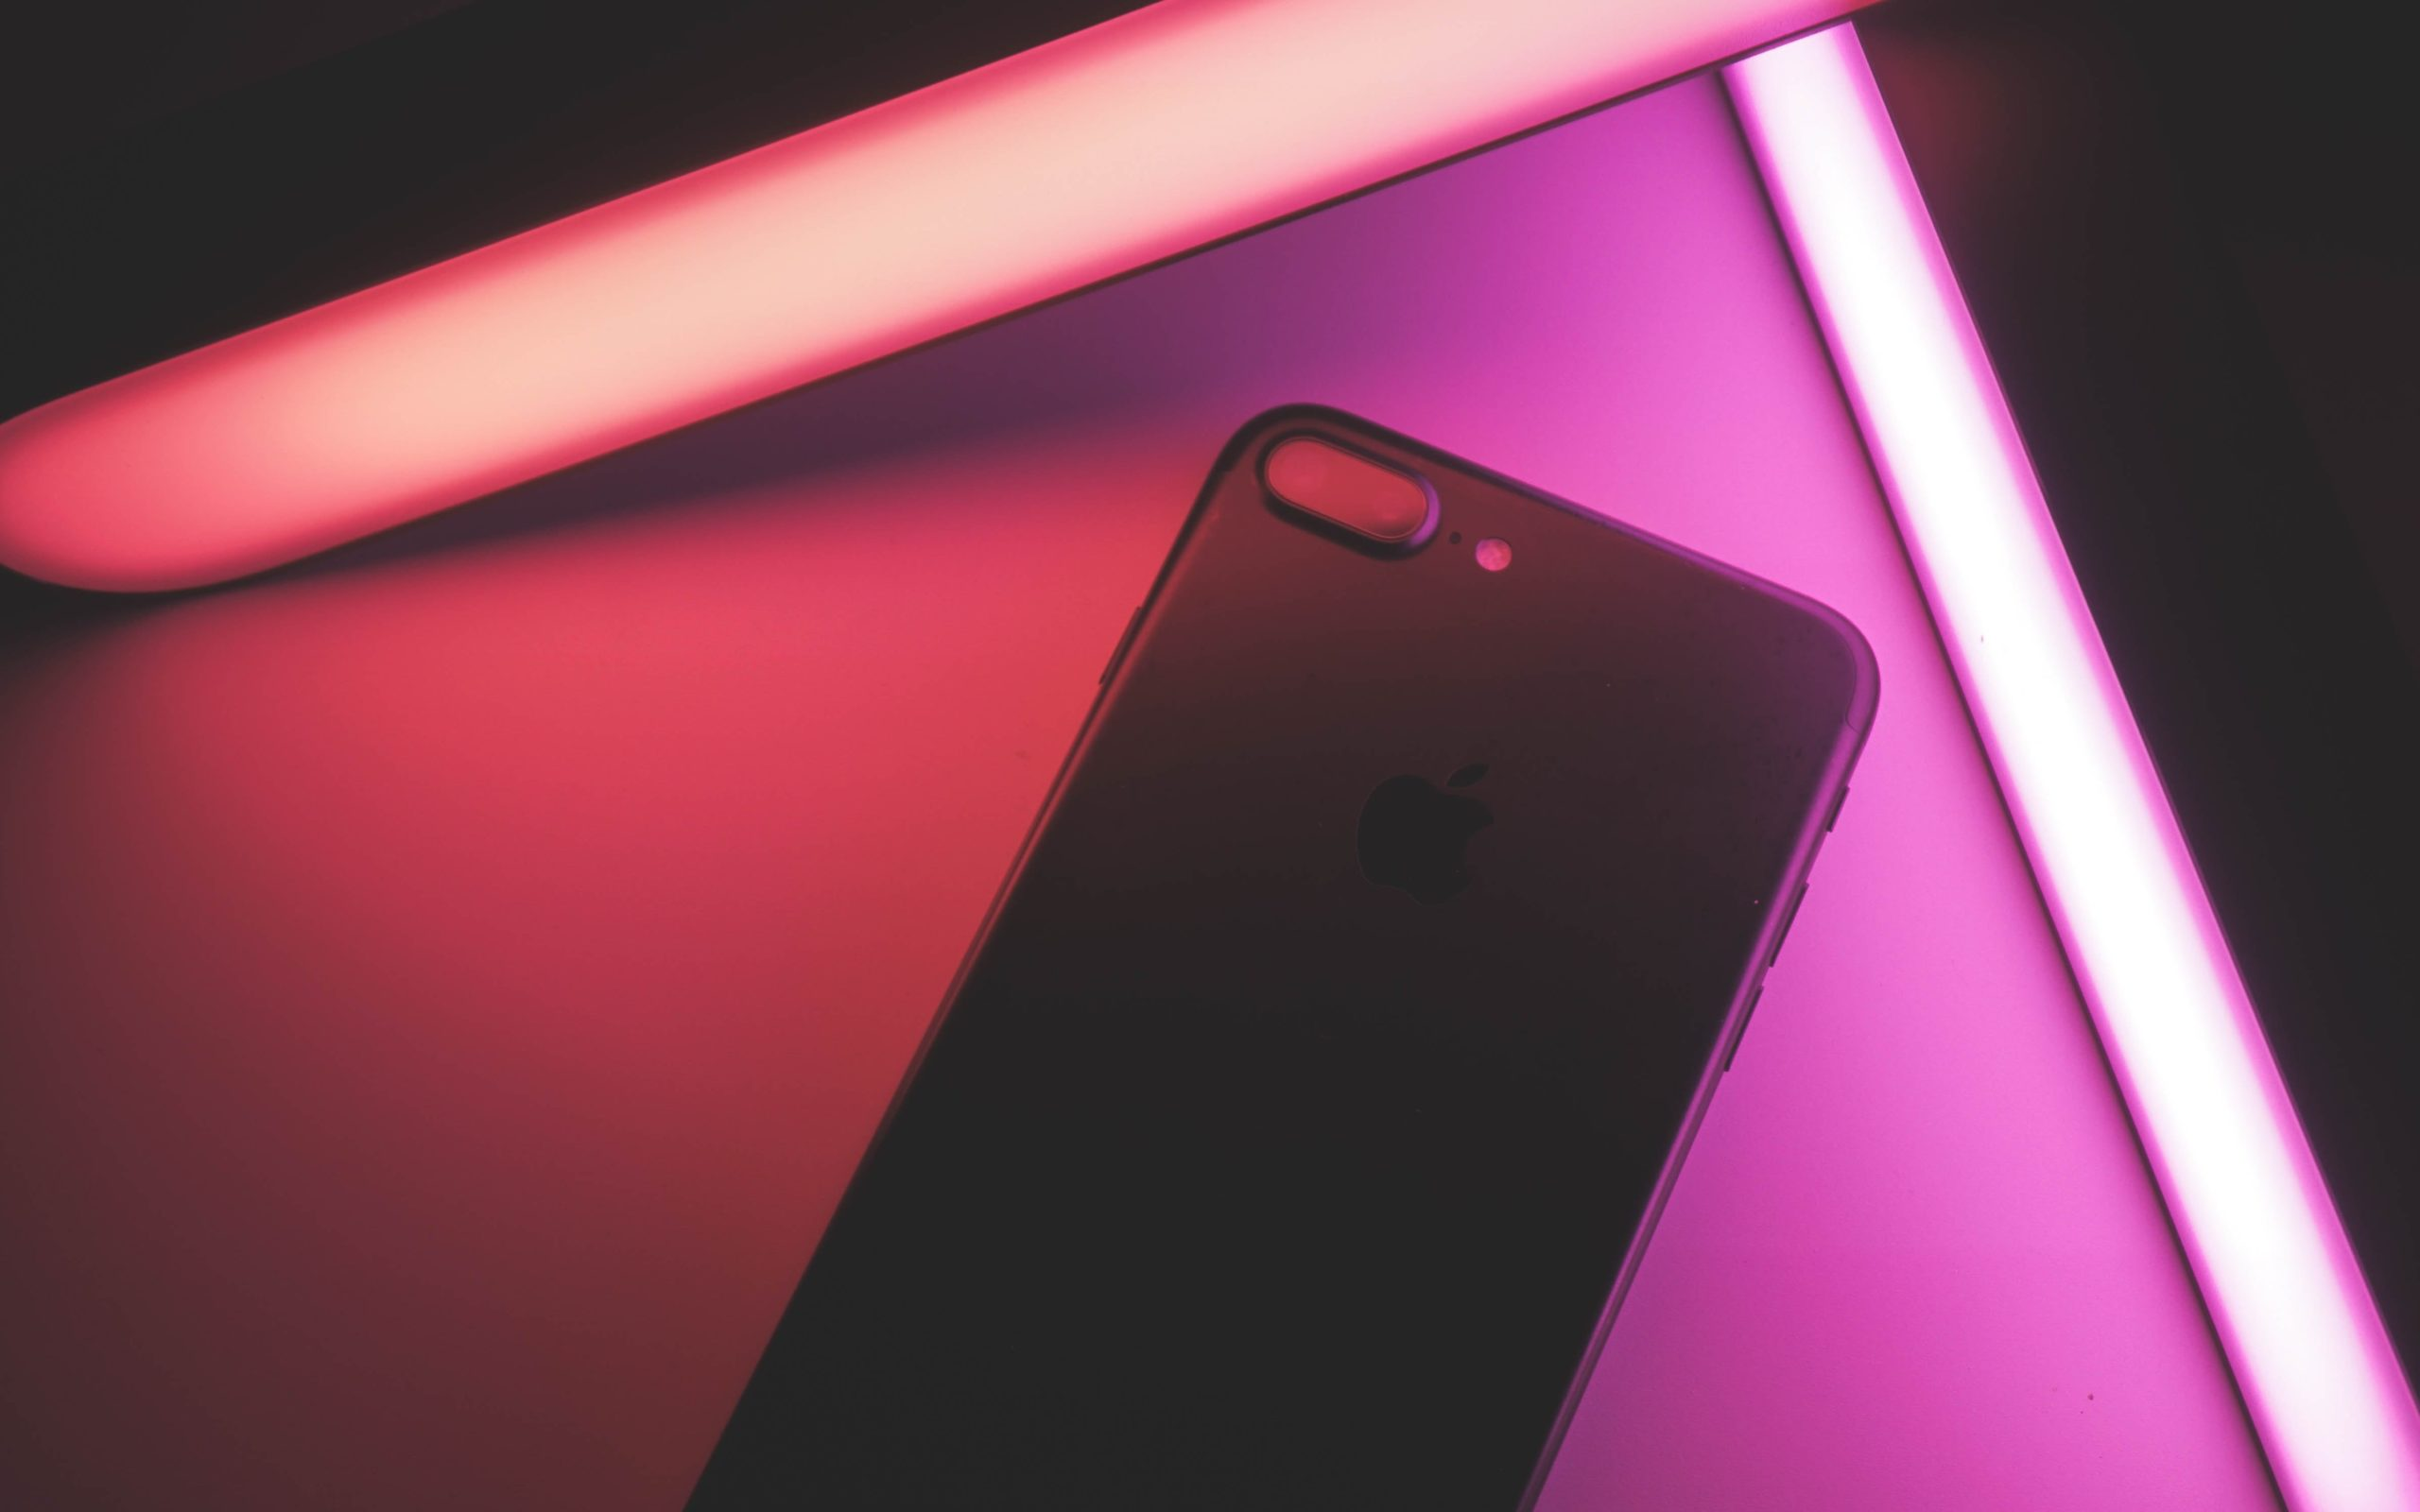 iphone being illuminated by colorful LED smart lights